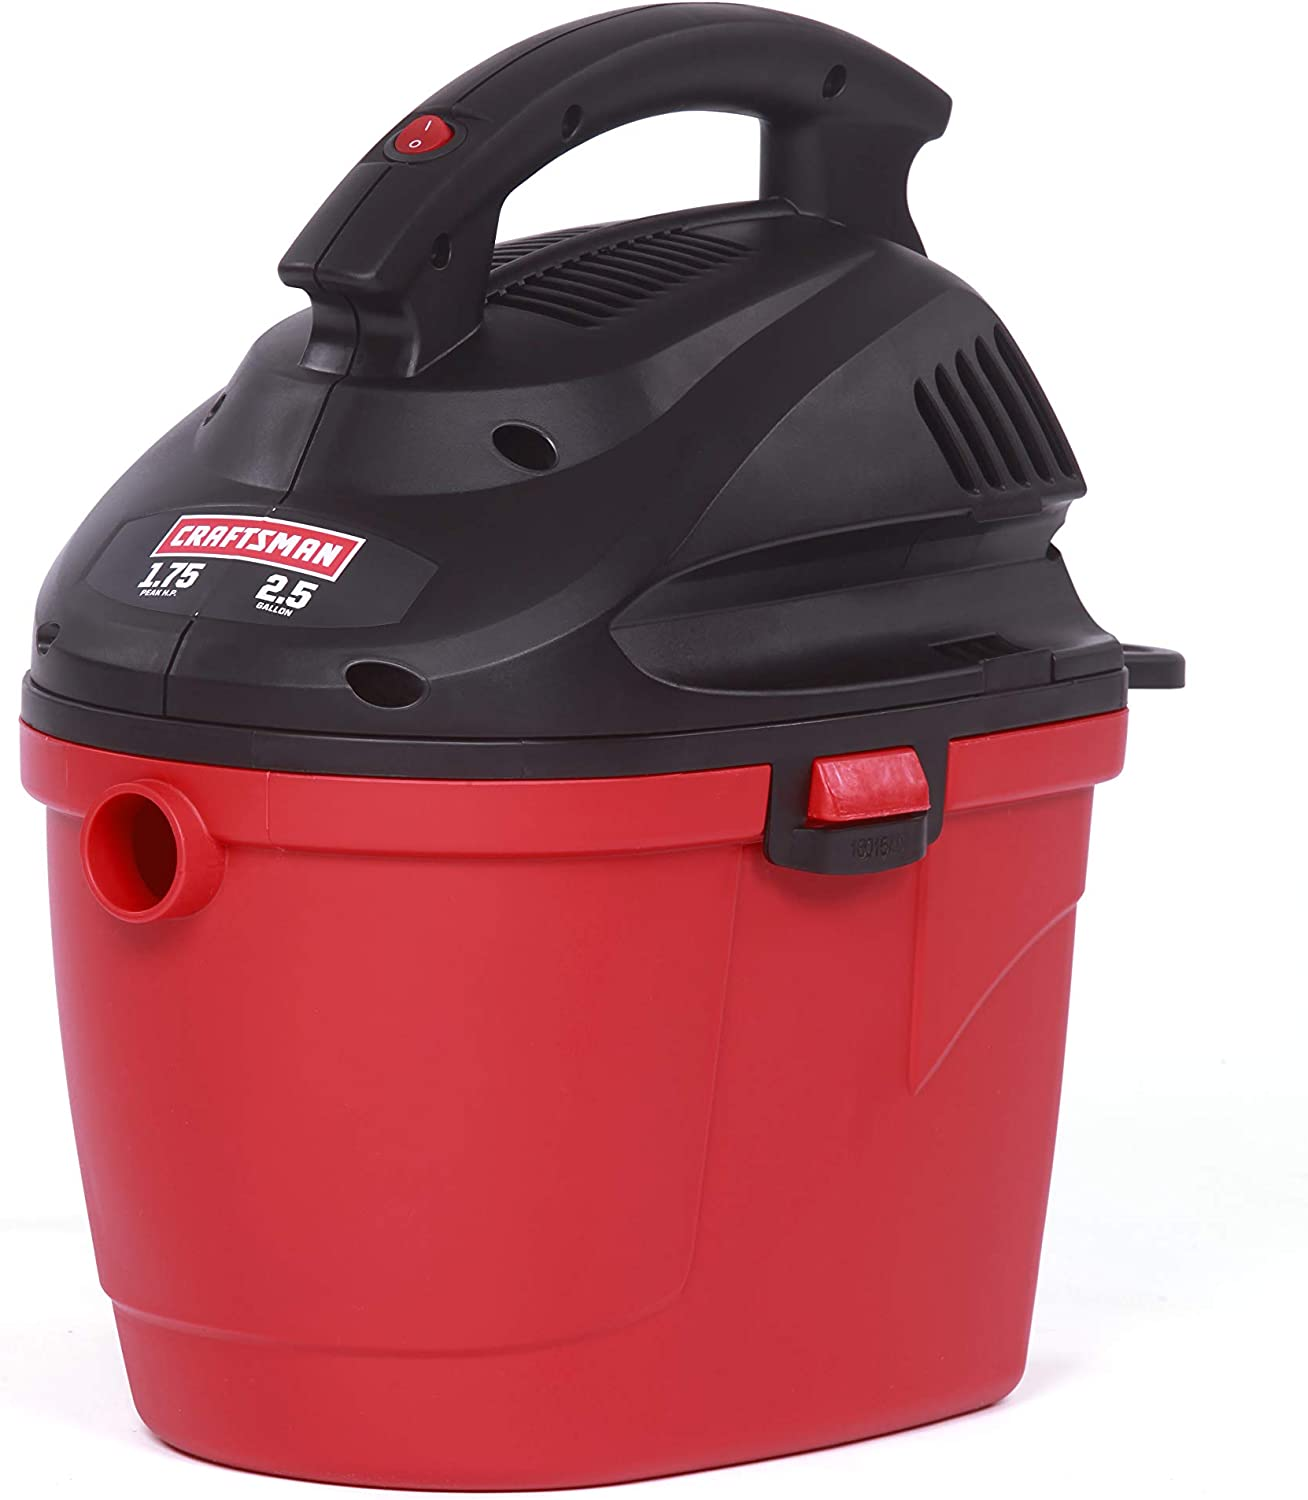 CRAFTSMAN 17611 2.5 Gallon 1.75 Peak HP Wet/Dry Vac, Portable Shop Vacuum with Attachments